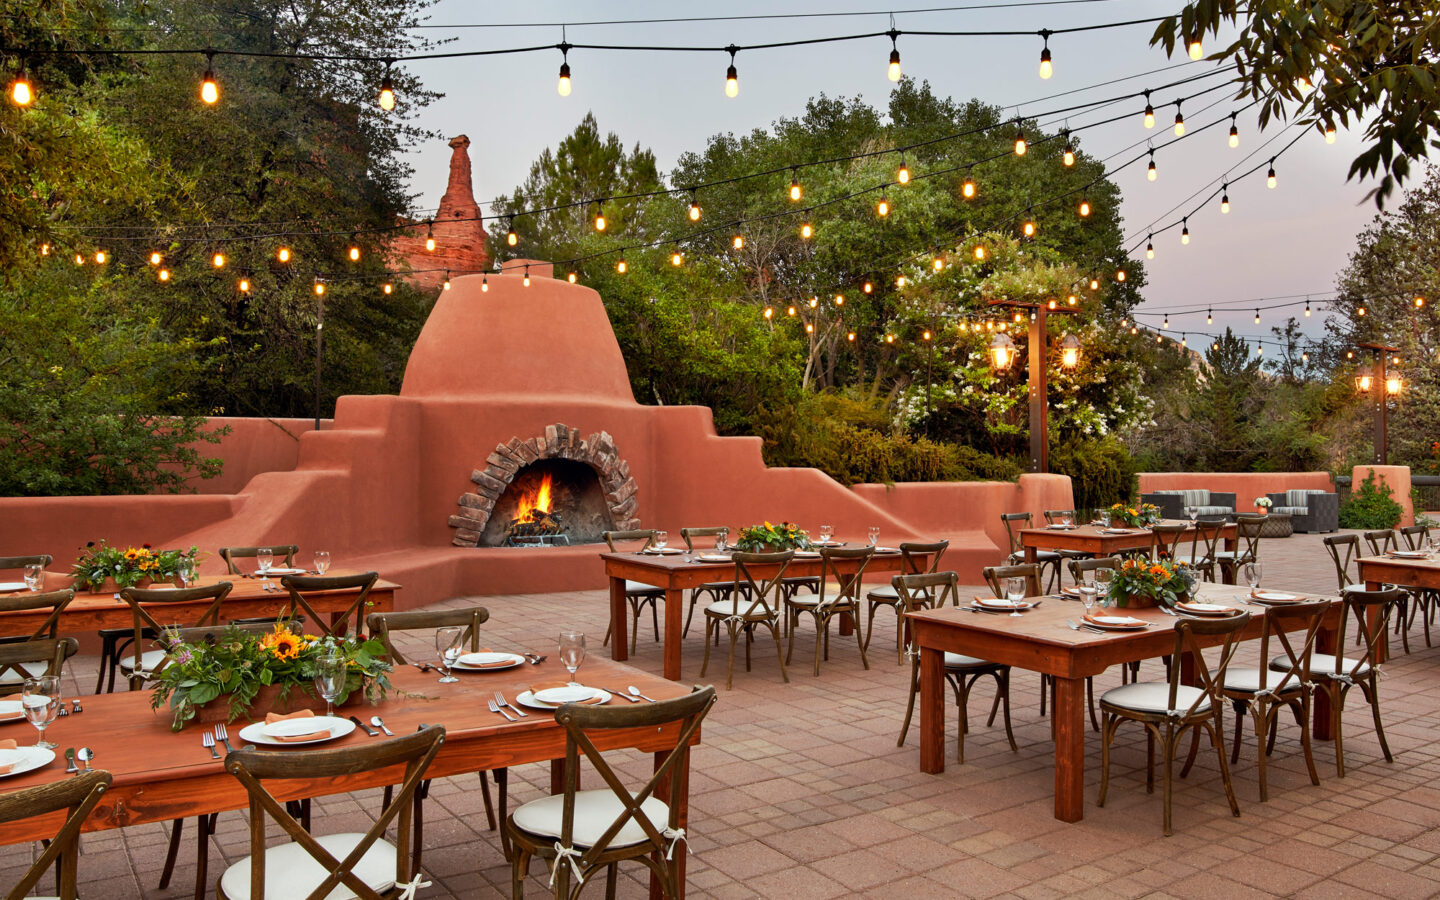 Dining tables outside near a large red stone fireplace